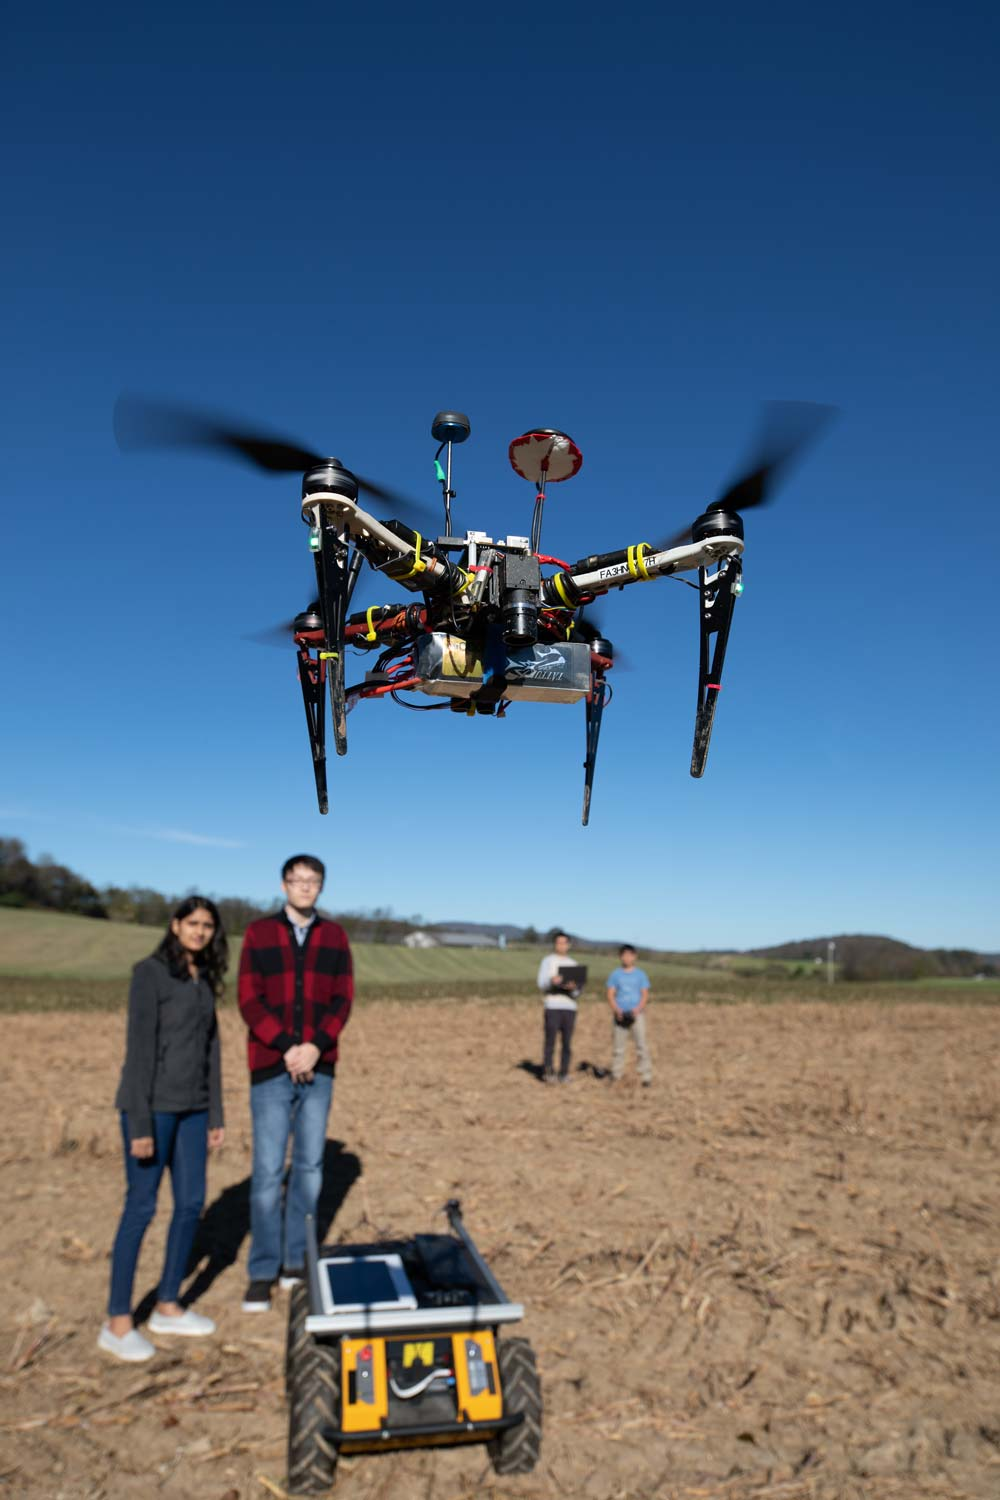 A drone hovers in the center of the phone. In the background students stand near a ground vehicle while the drone operators stand further back.